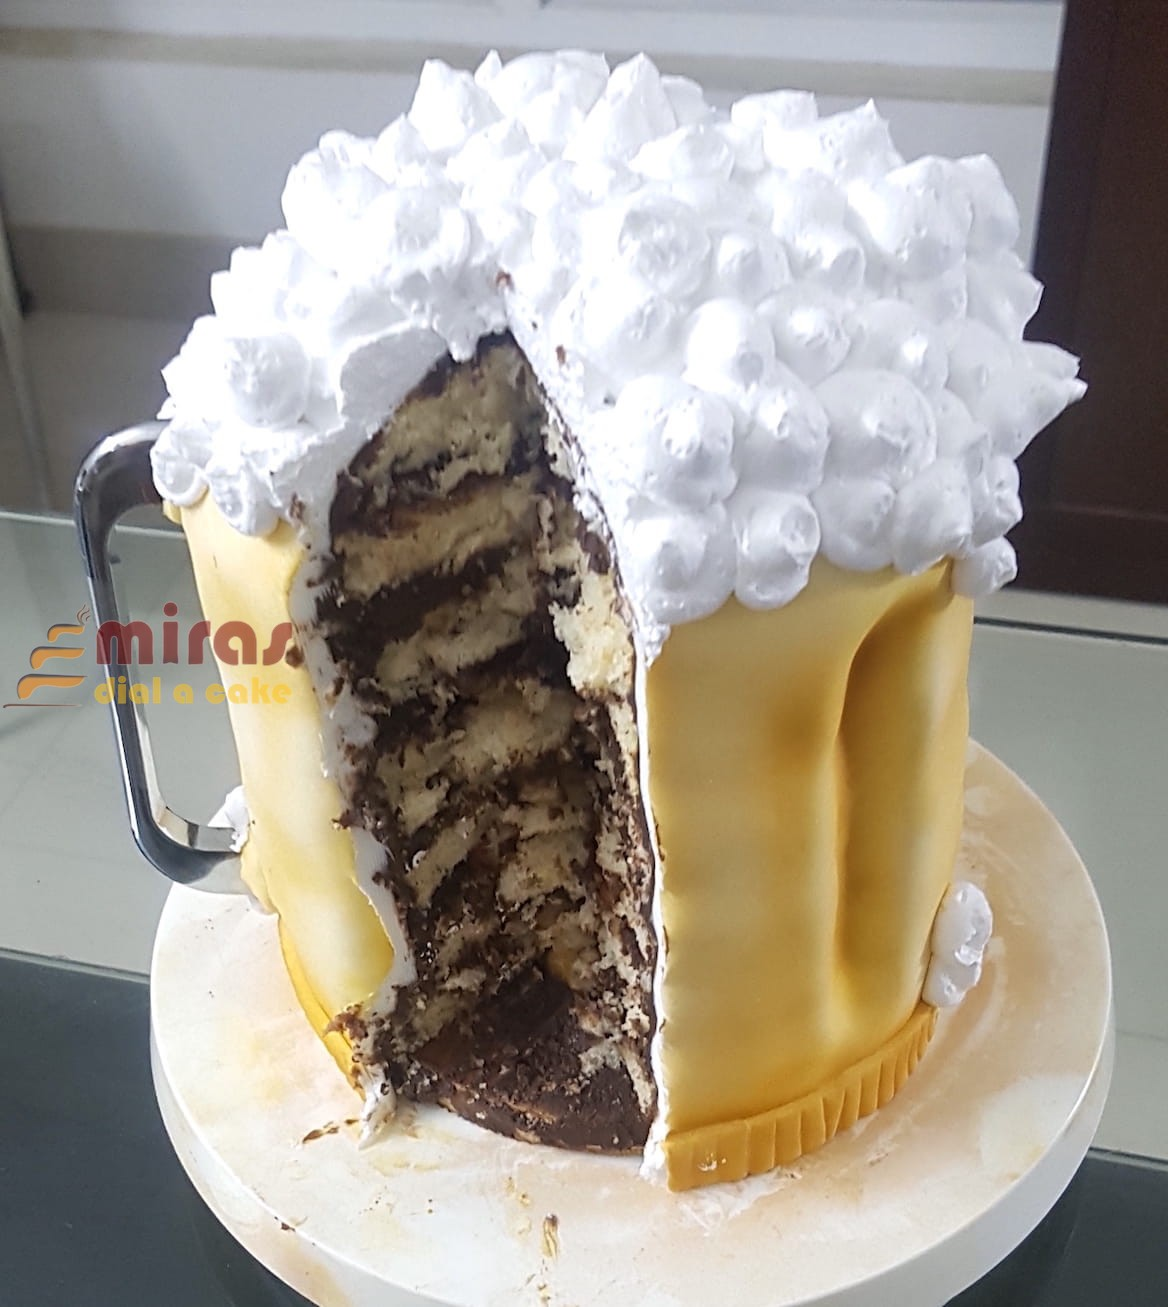 Online Customized Theme Cakes Delivered In Bangalore Delicious Birthday Wedding Anniversary Baby Shower Cakes Delivered In Bangalore